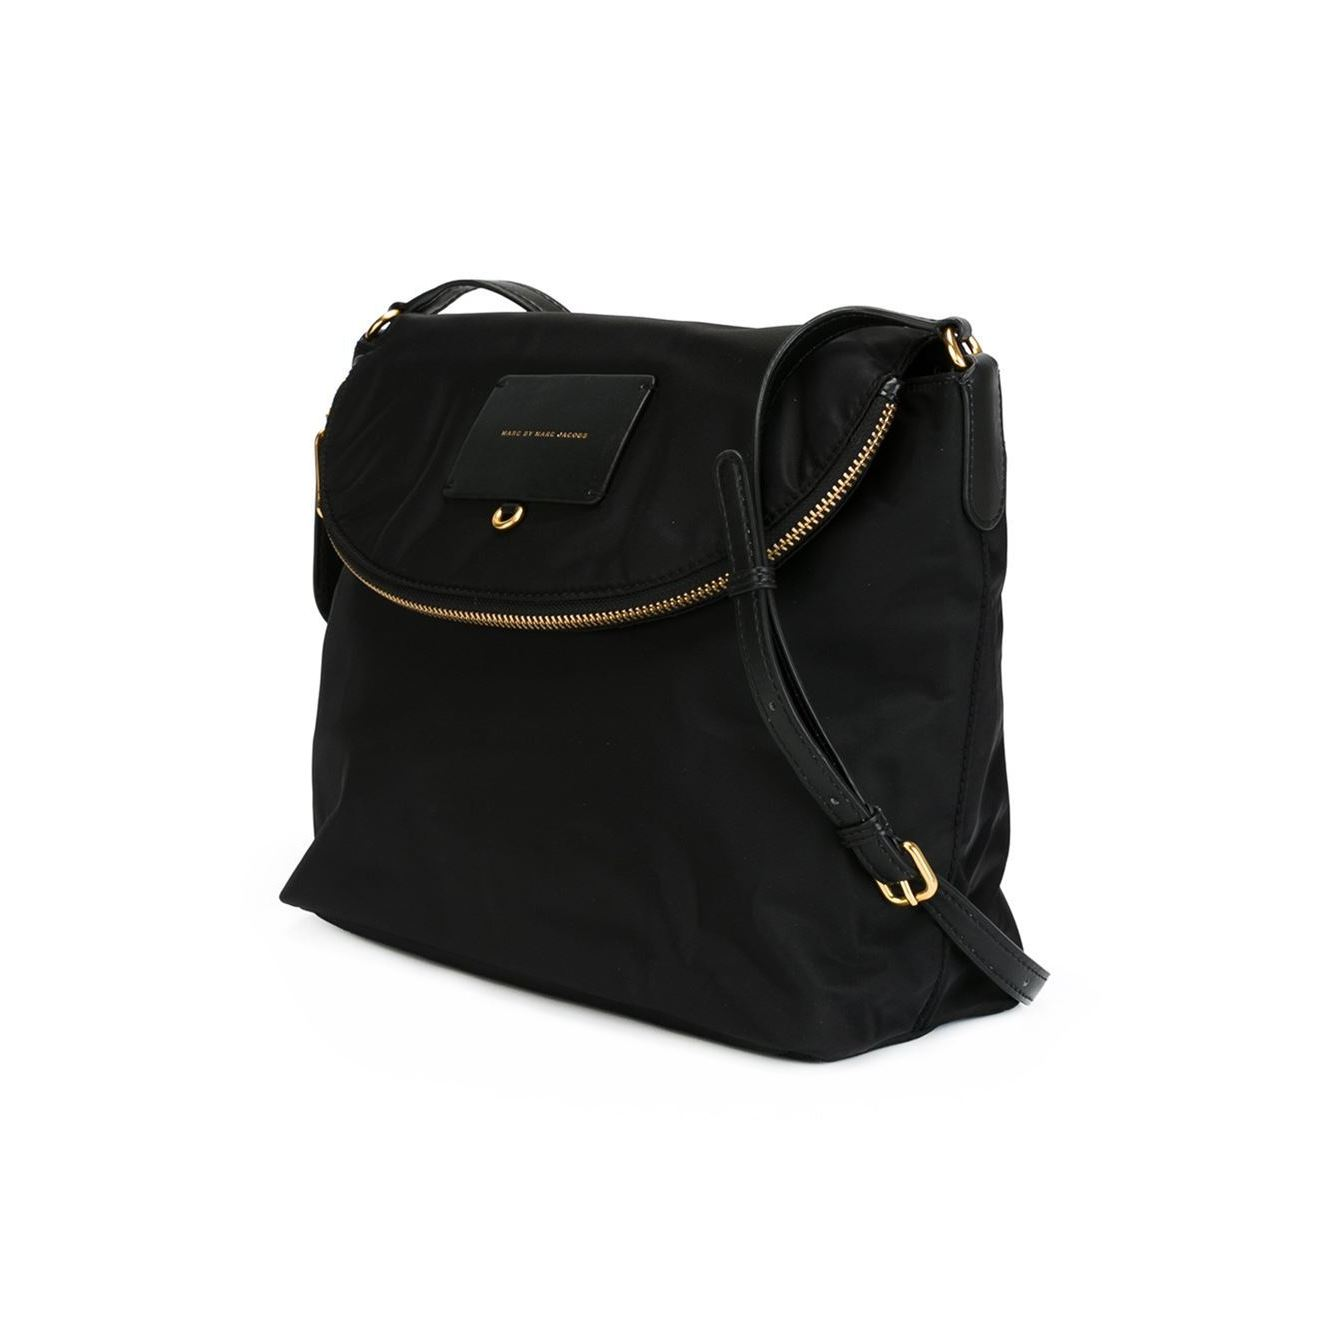 1c63141be Shop Marc By Marc Jacobs Preppy Legend Sasha Nylon Black Crossbody - Free  Shipping Today - Overstock - 10394222